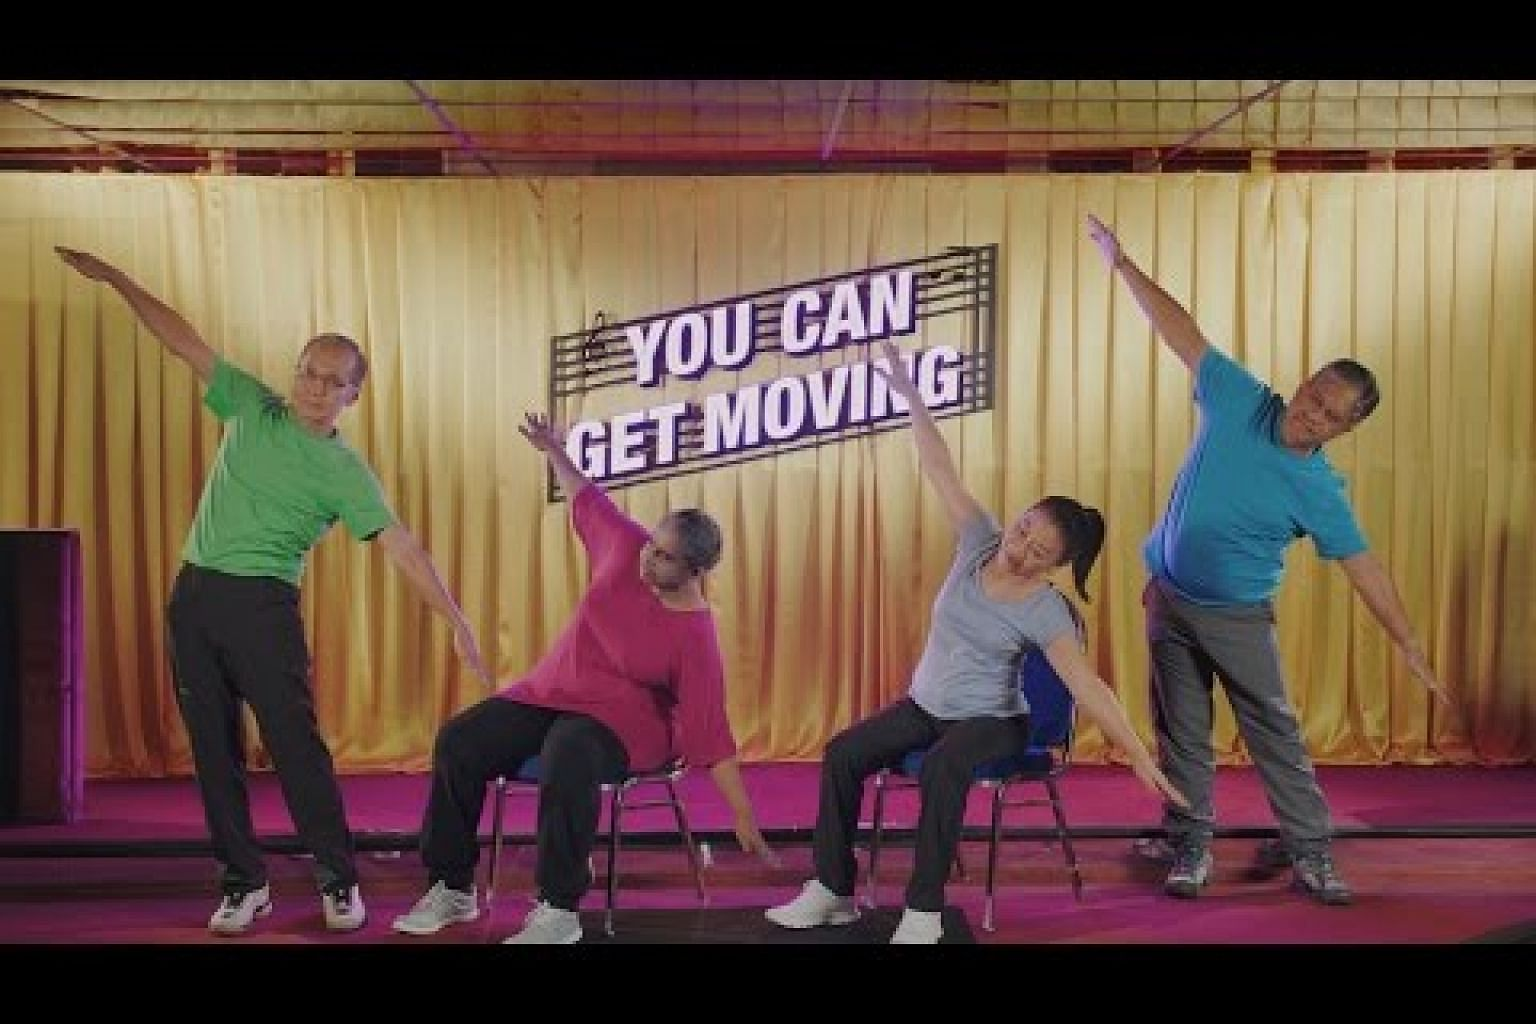 You Can Get Moving - Step by Step Demonstration Video (English version)